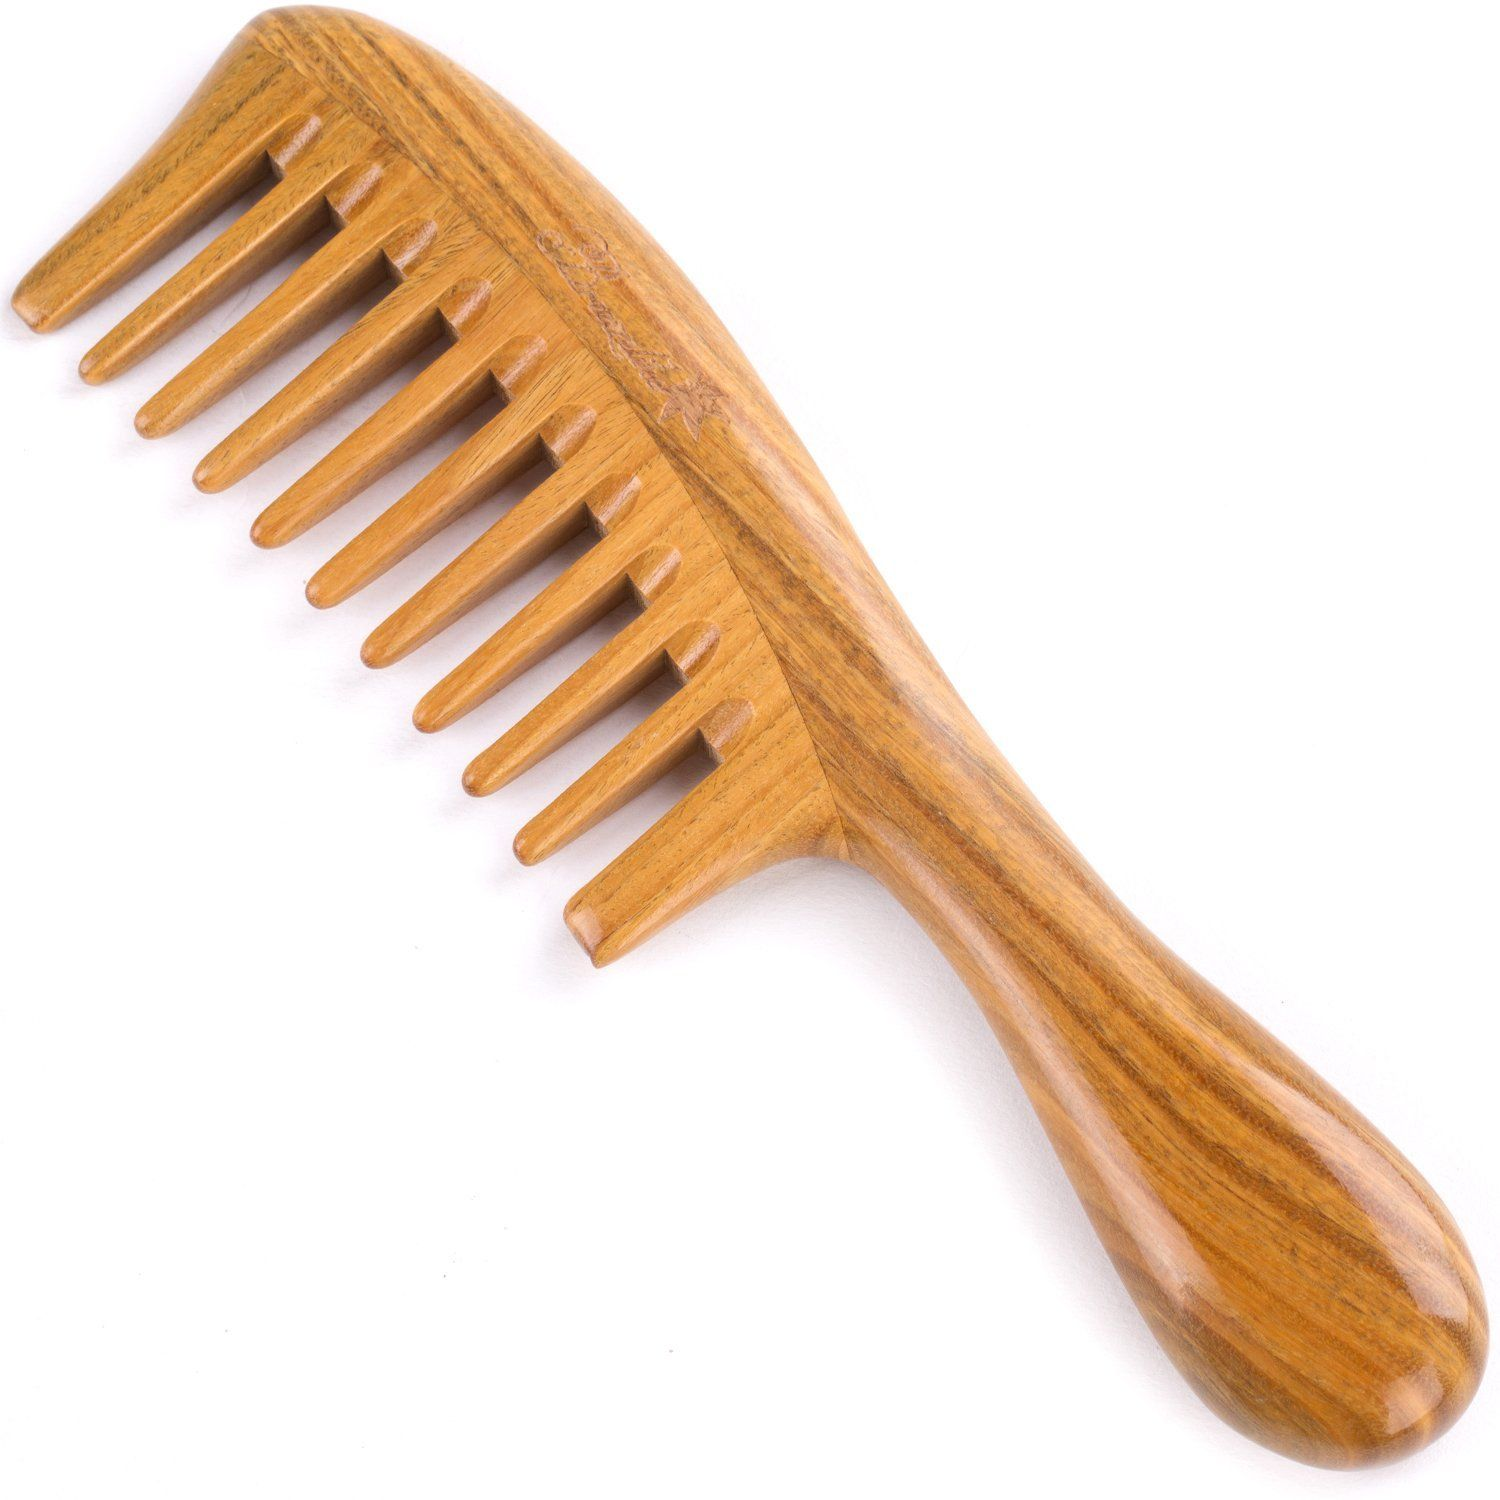 Use a wide-tooth comb to detangle